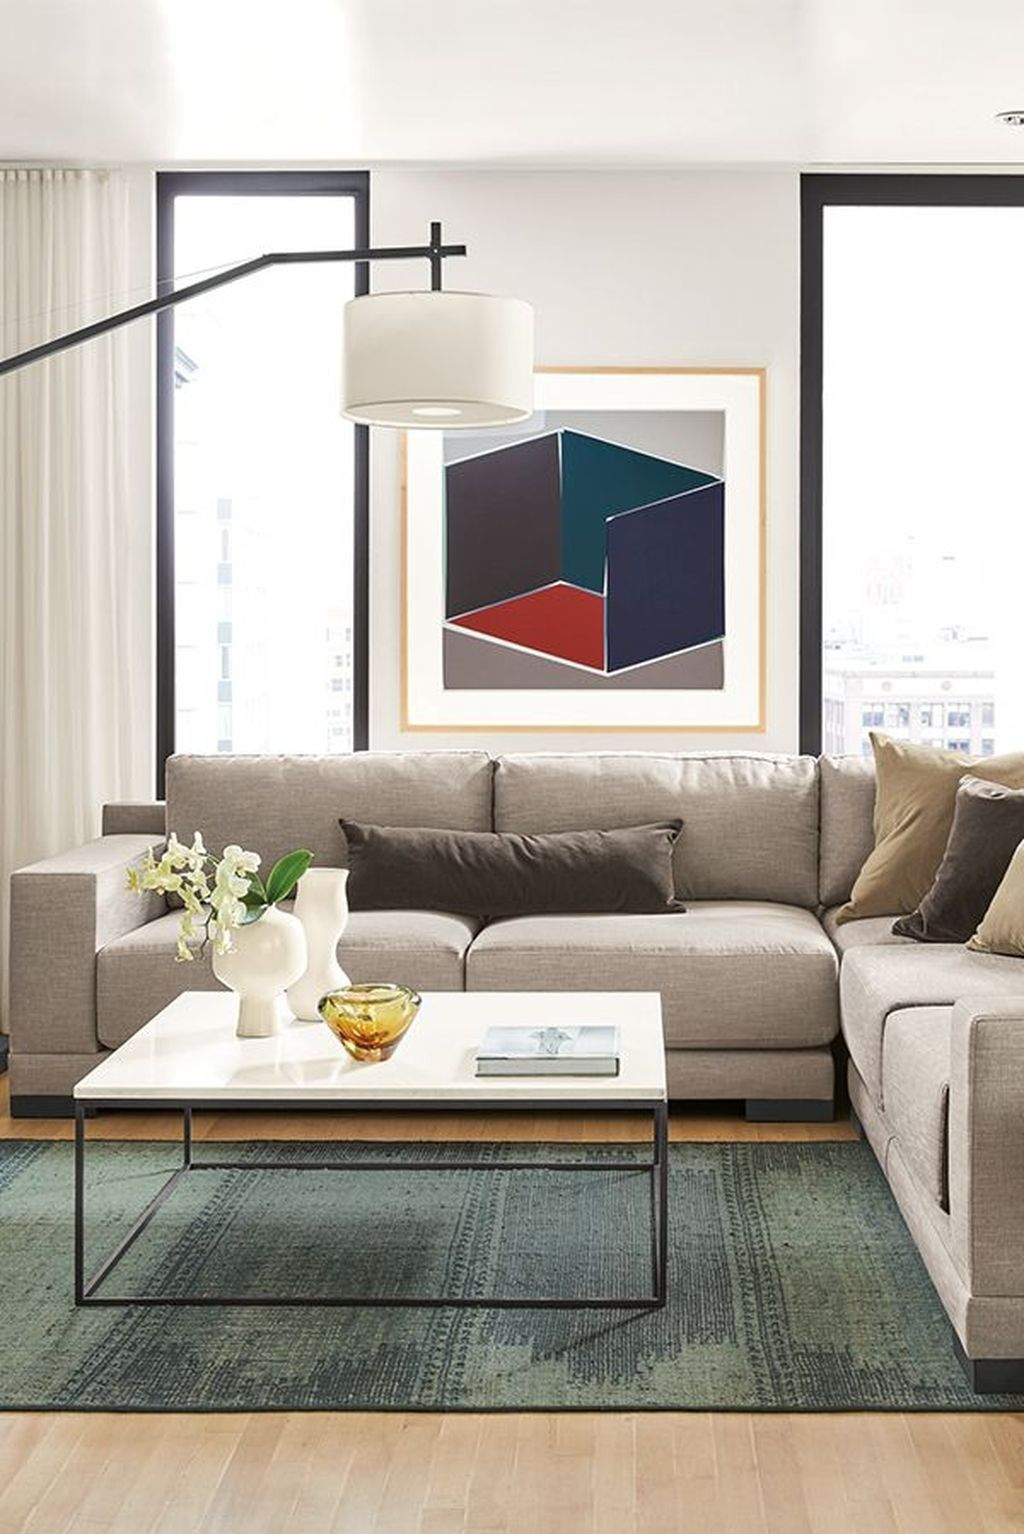 Adorable Living Room Design Ideas For Young Family To Have In